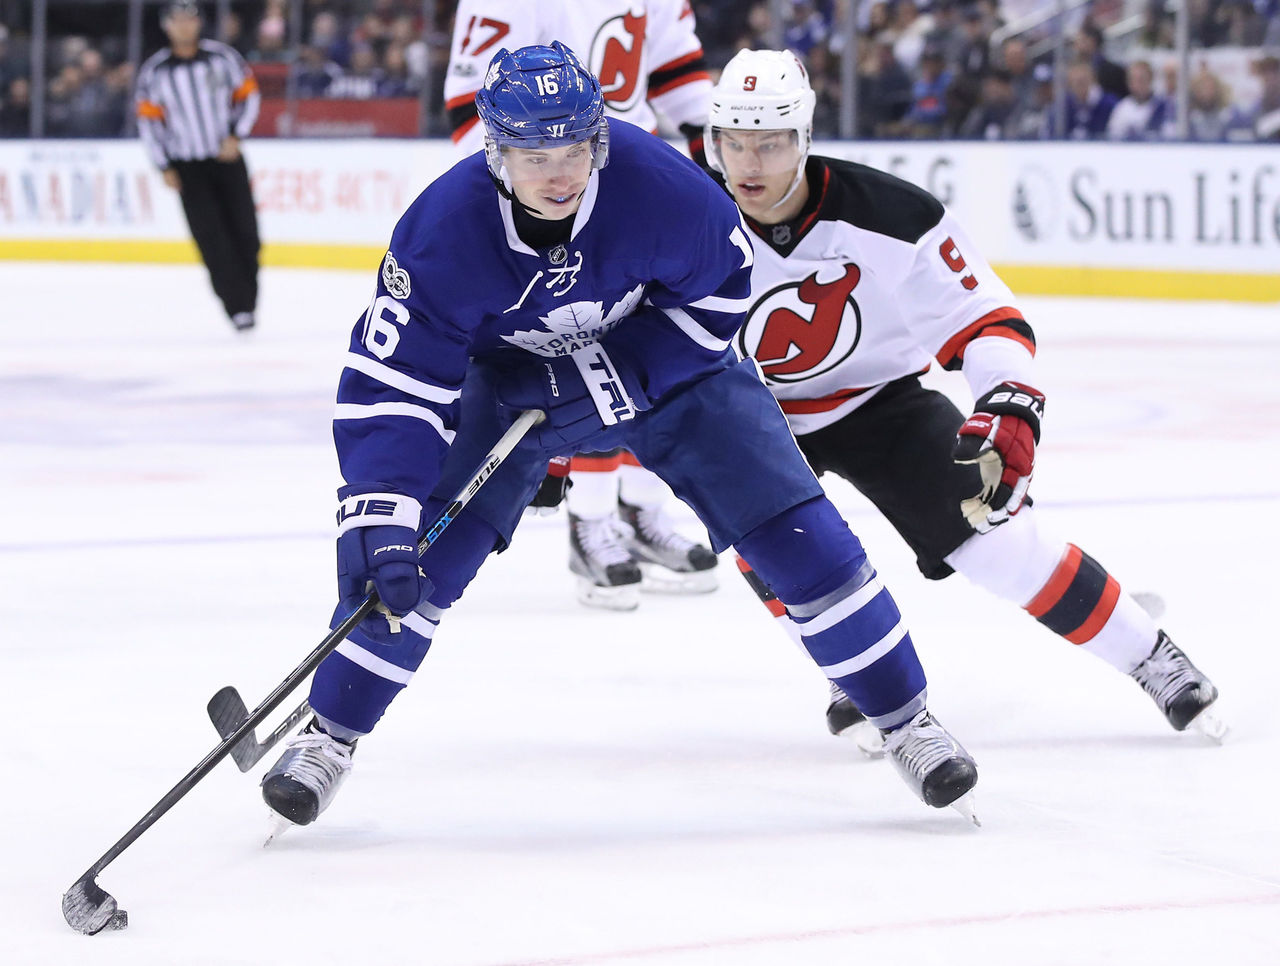 Cropped 2017 03 24t014536z 1323752317 nocid rtrmadp 3 nhl new jersey devils at toronto maple leafs